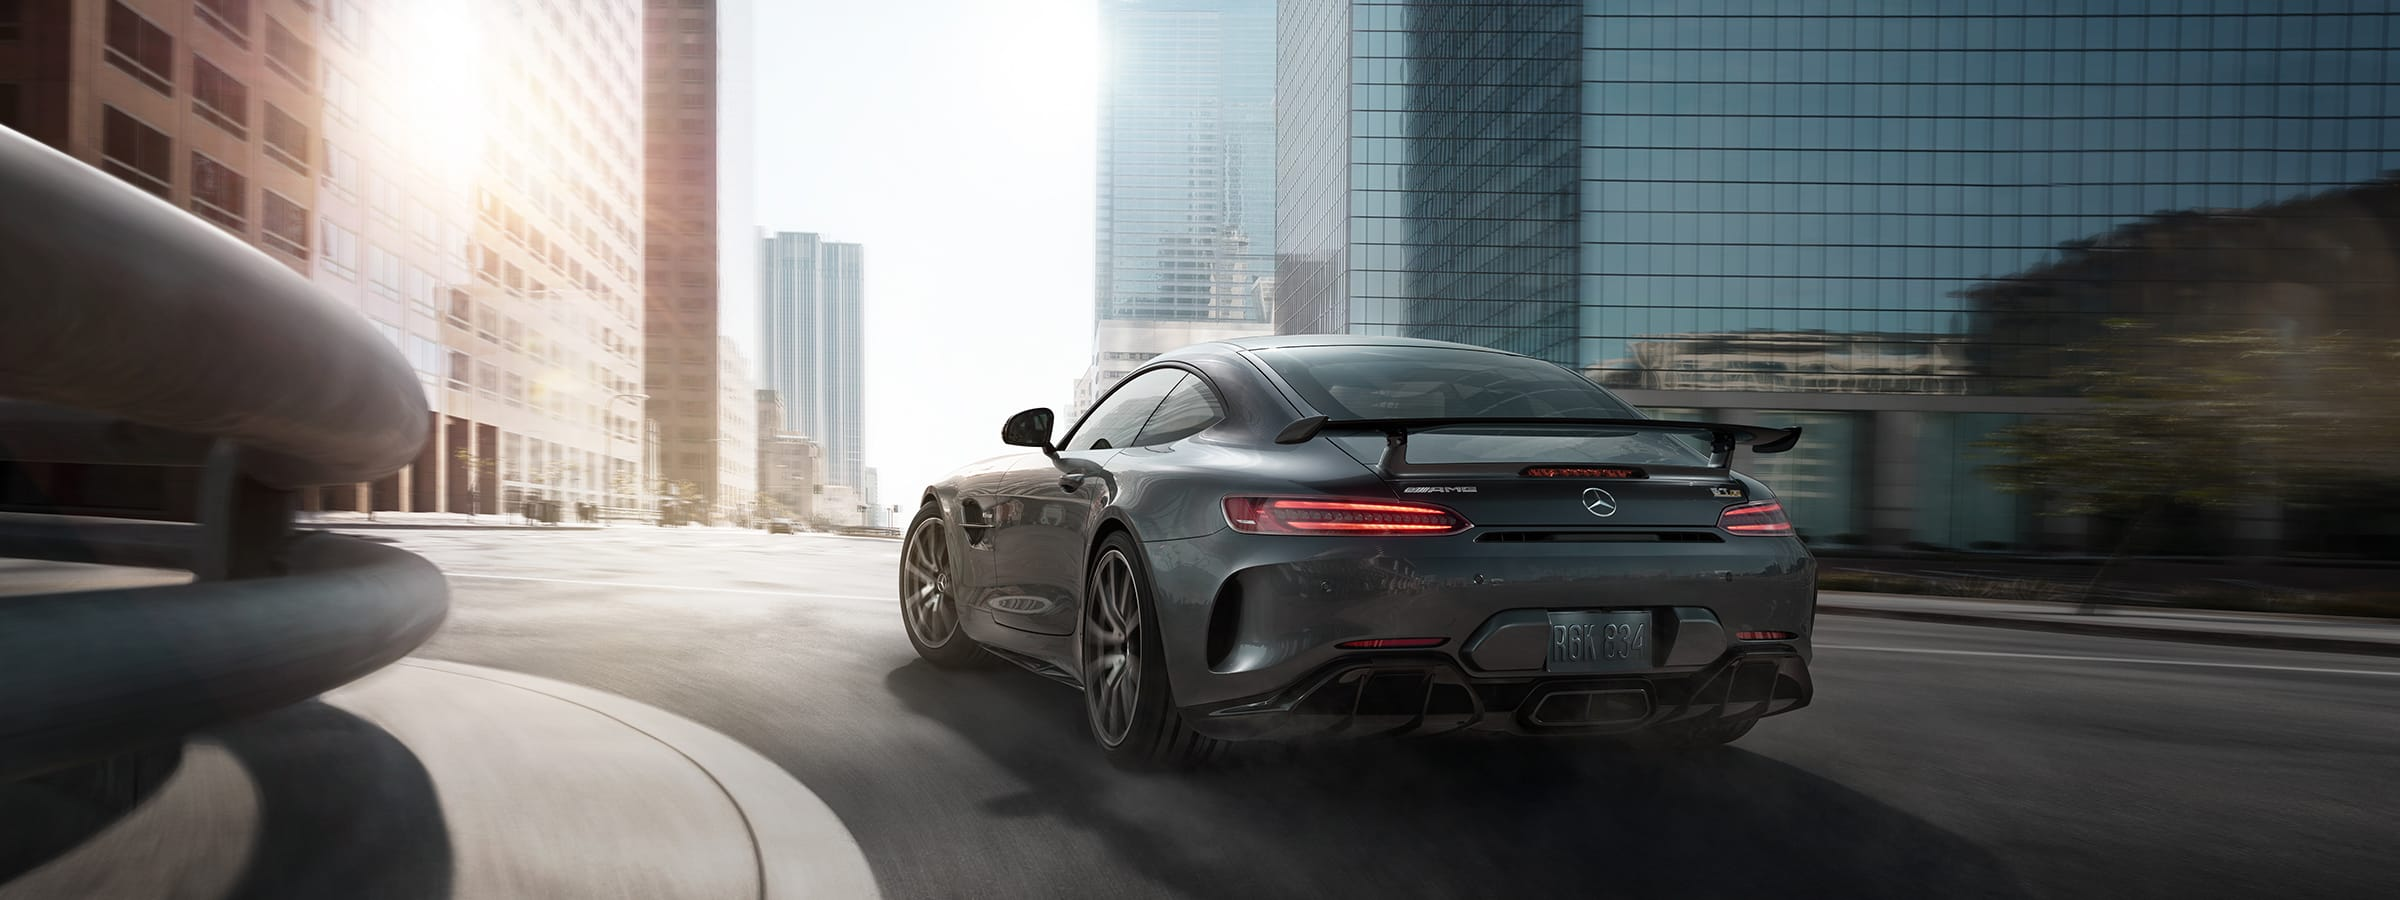 Mercedes Amg Gt Coupe High Performance Sports Car Mercedes Benz